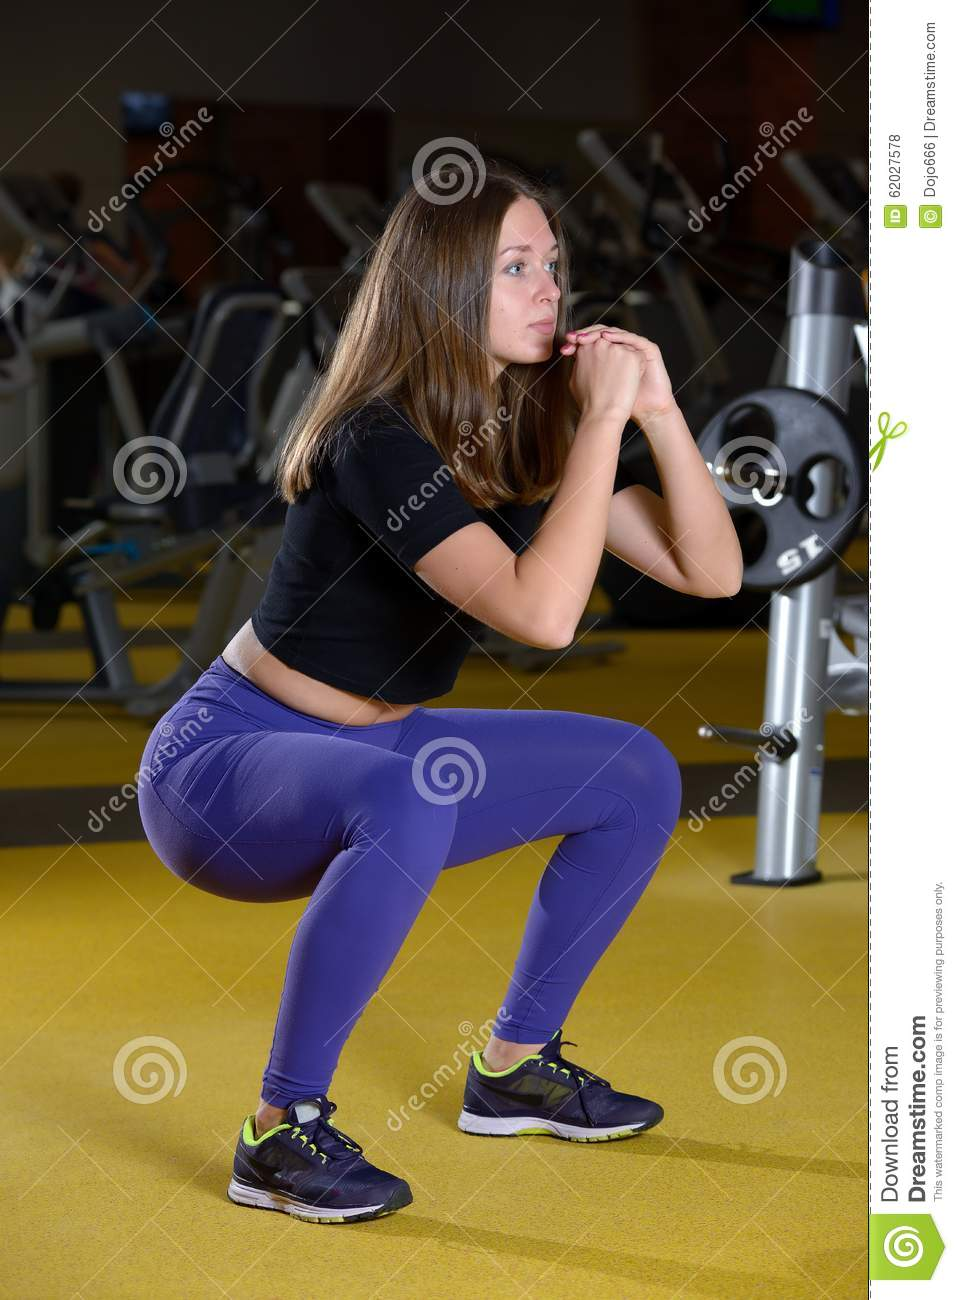 Squat Woman Workout Exercise At Gym Stock Photo - Image of pushup